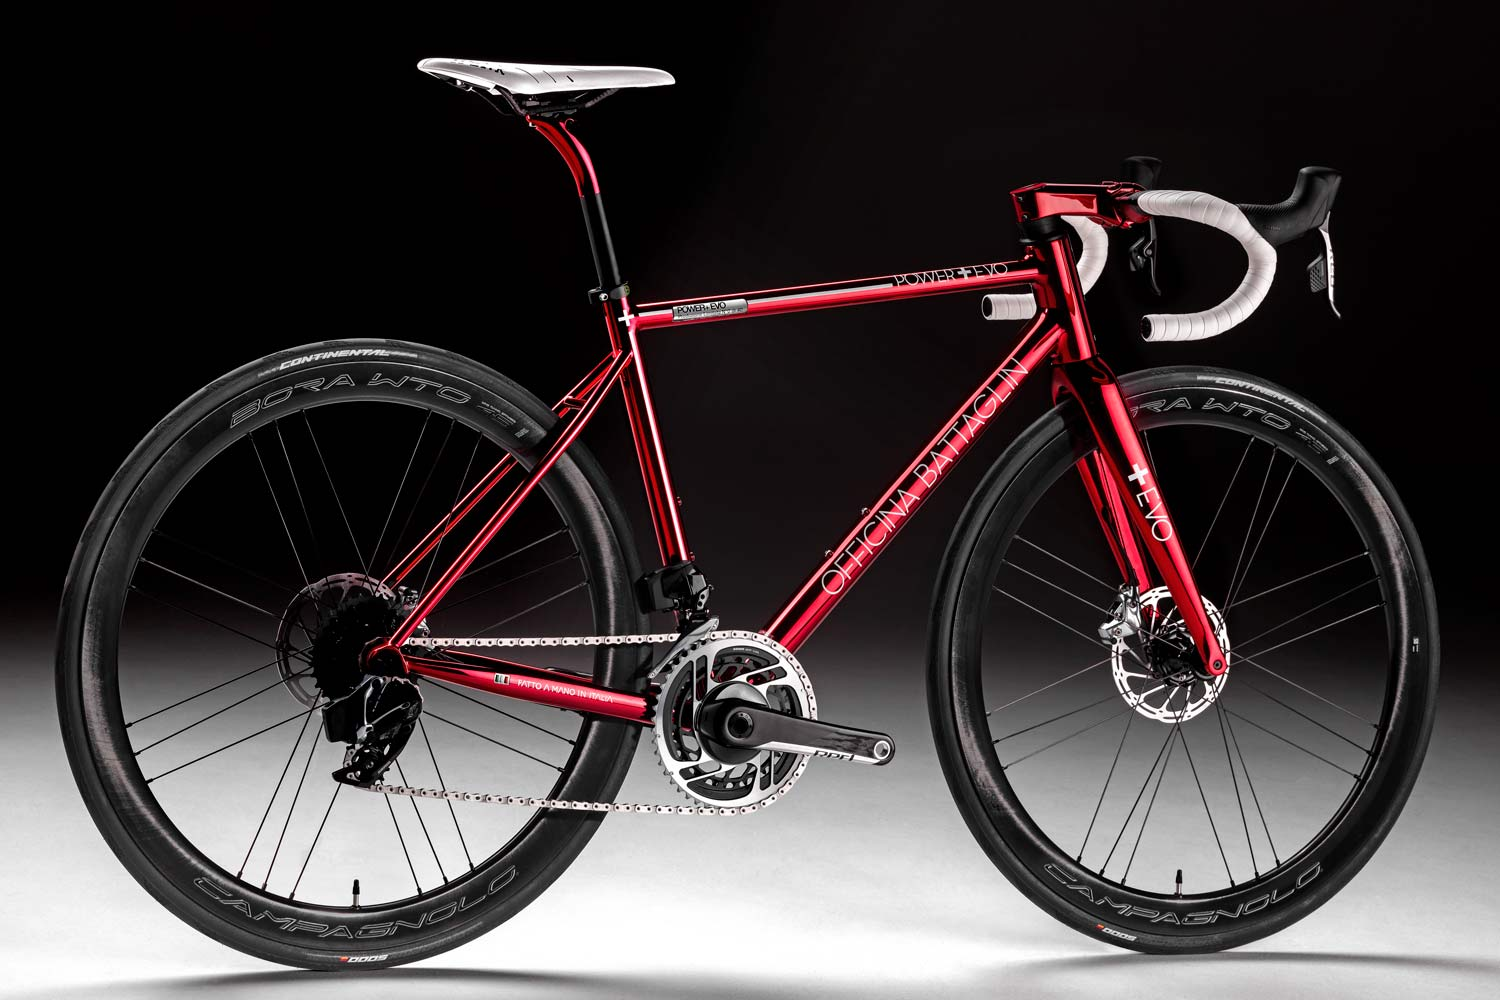 Battaglin Power Plus EVO ltd road bike, limited edition modern lightweight custom handmade Italian steel road bike, Power+ EVO is the first steel frame designed for an integrated cockpit with fully hidden cable routing